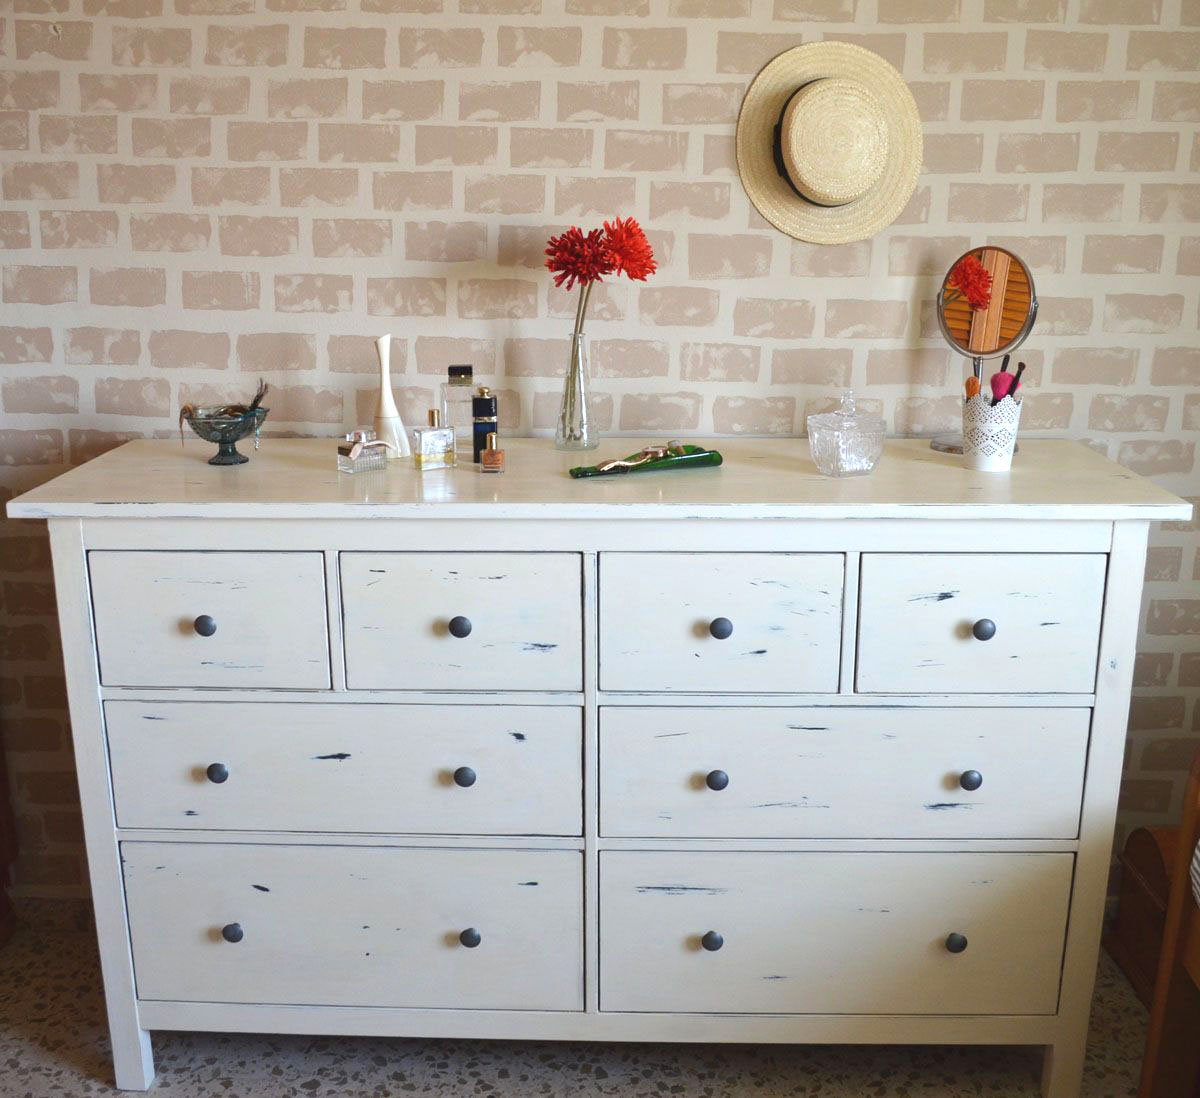 Mueble Decapado Blanco Cómoda Hemnes Decapada En Blanco Departamento De Ideas